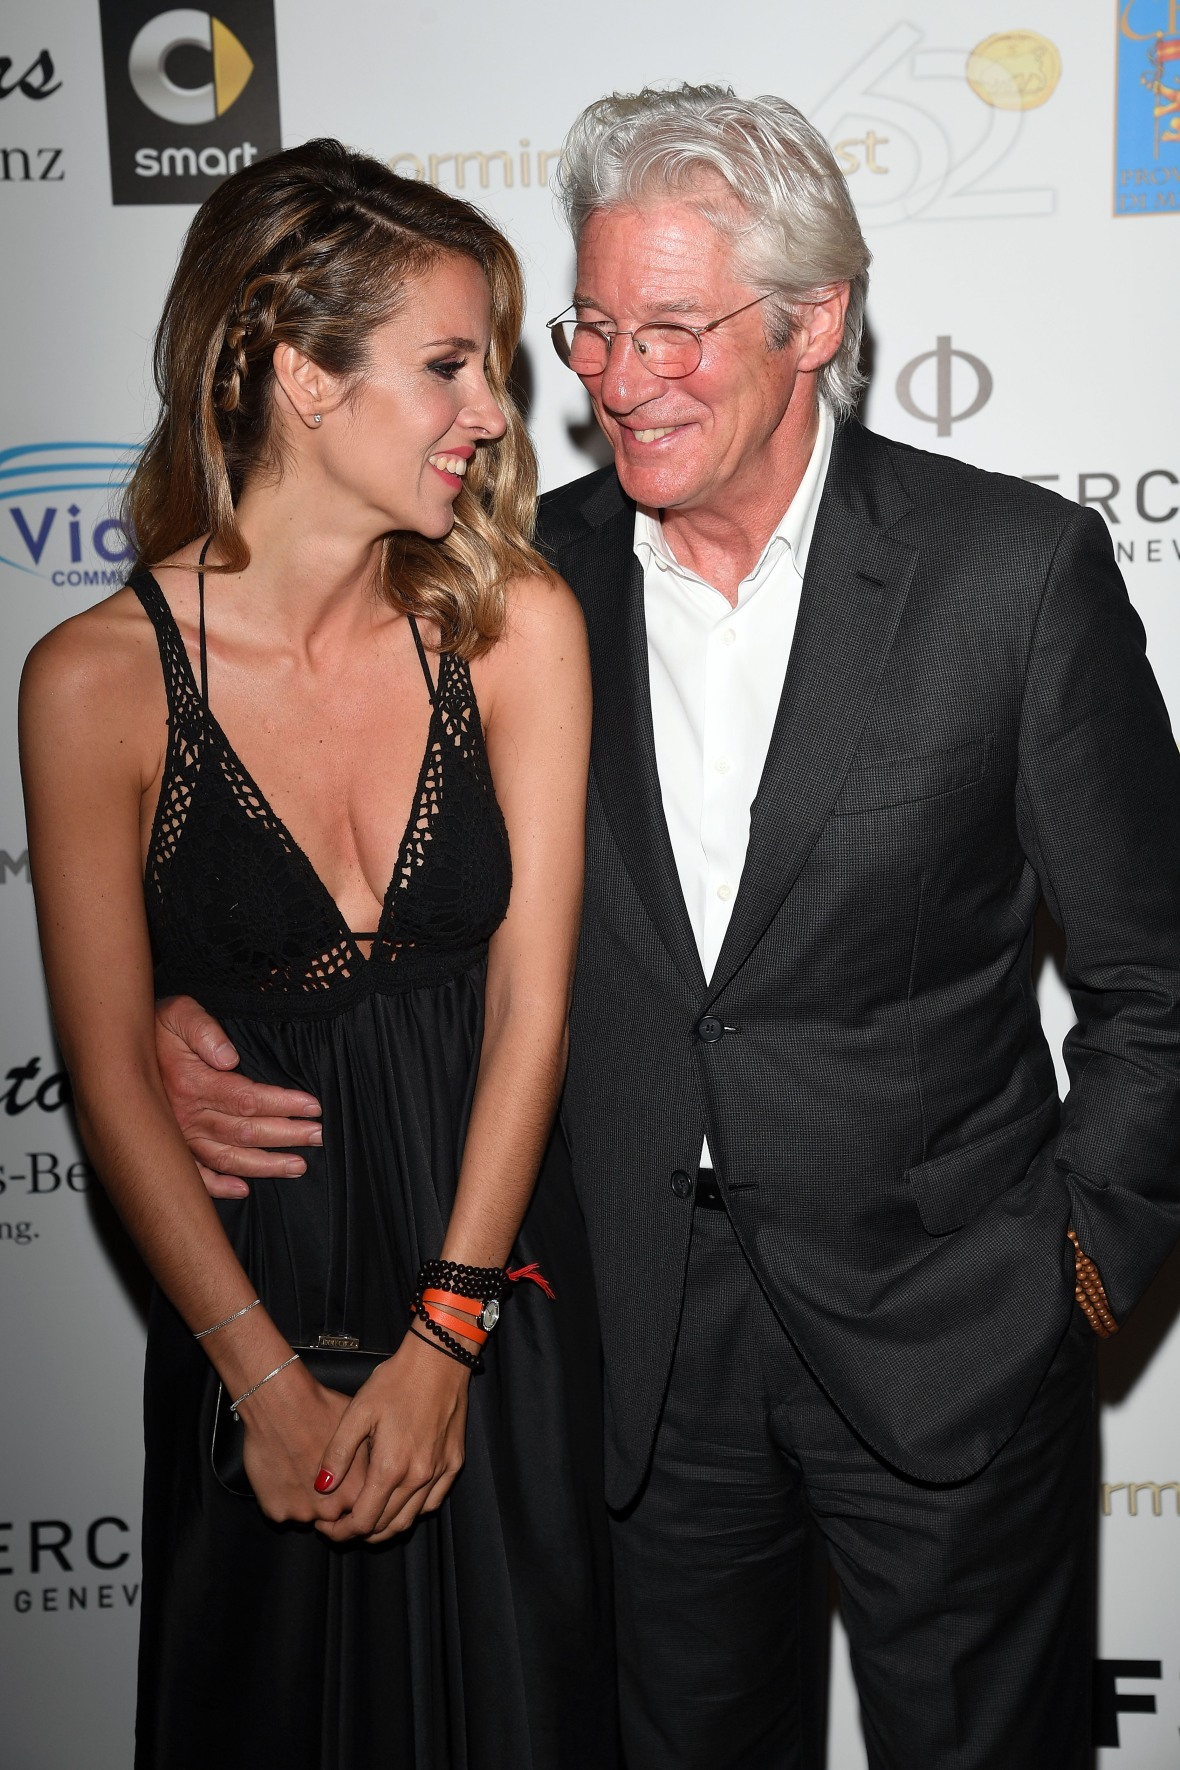 Who Is Richard Gere's New Wife? Meet Alejandra Silva!Richard Gere 2013 Wife